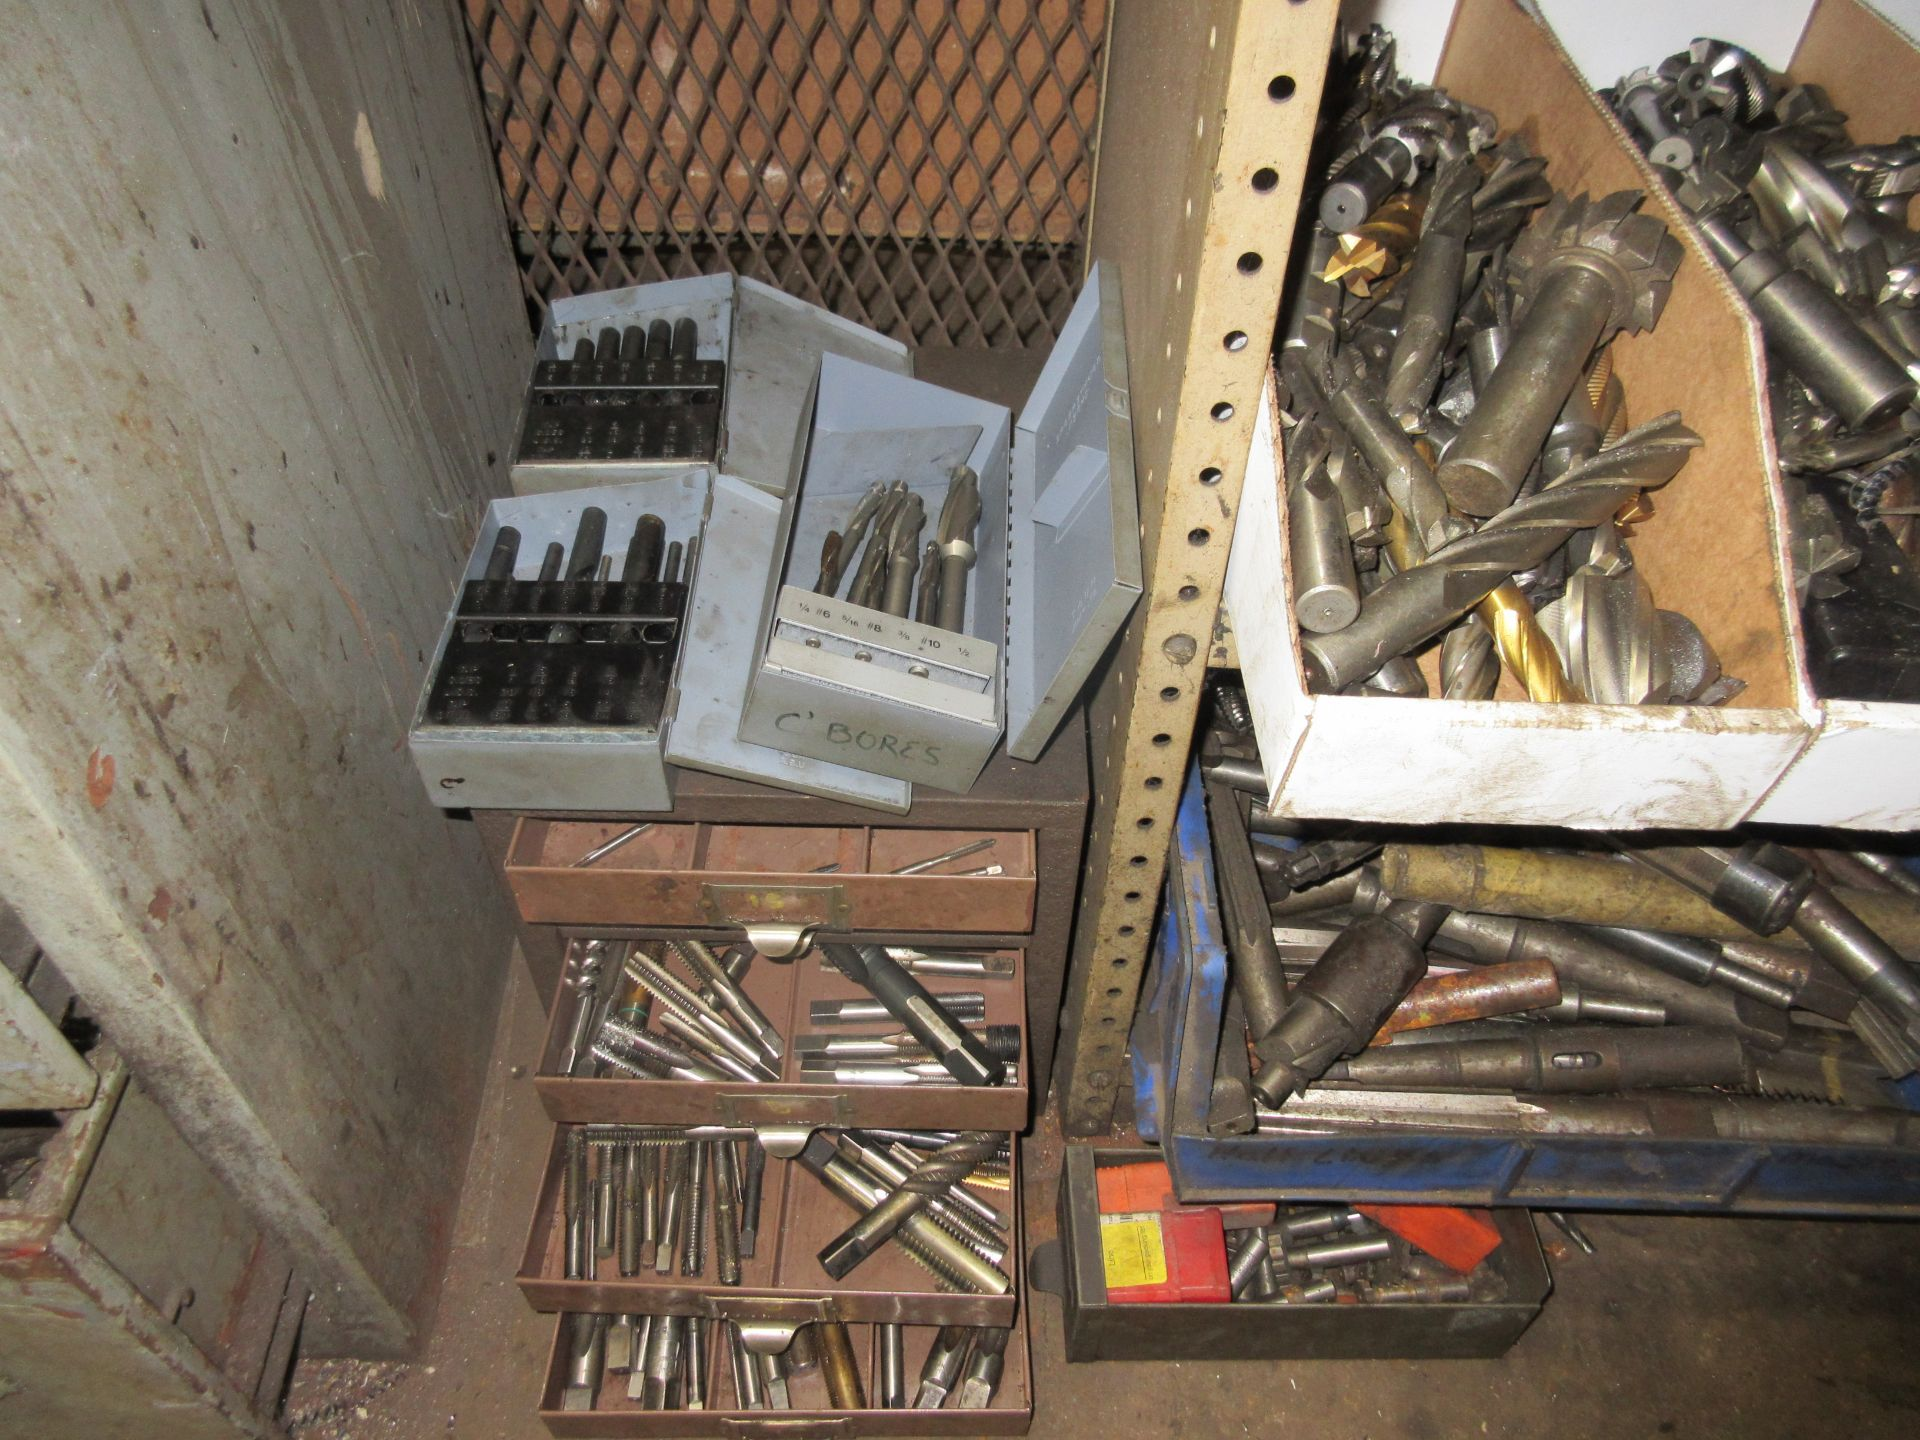 LOT Asst. Drius, Reamers, Taps, Cutters, Etc. - Image 2 of 3